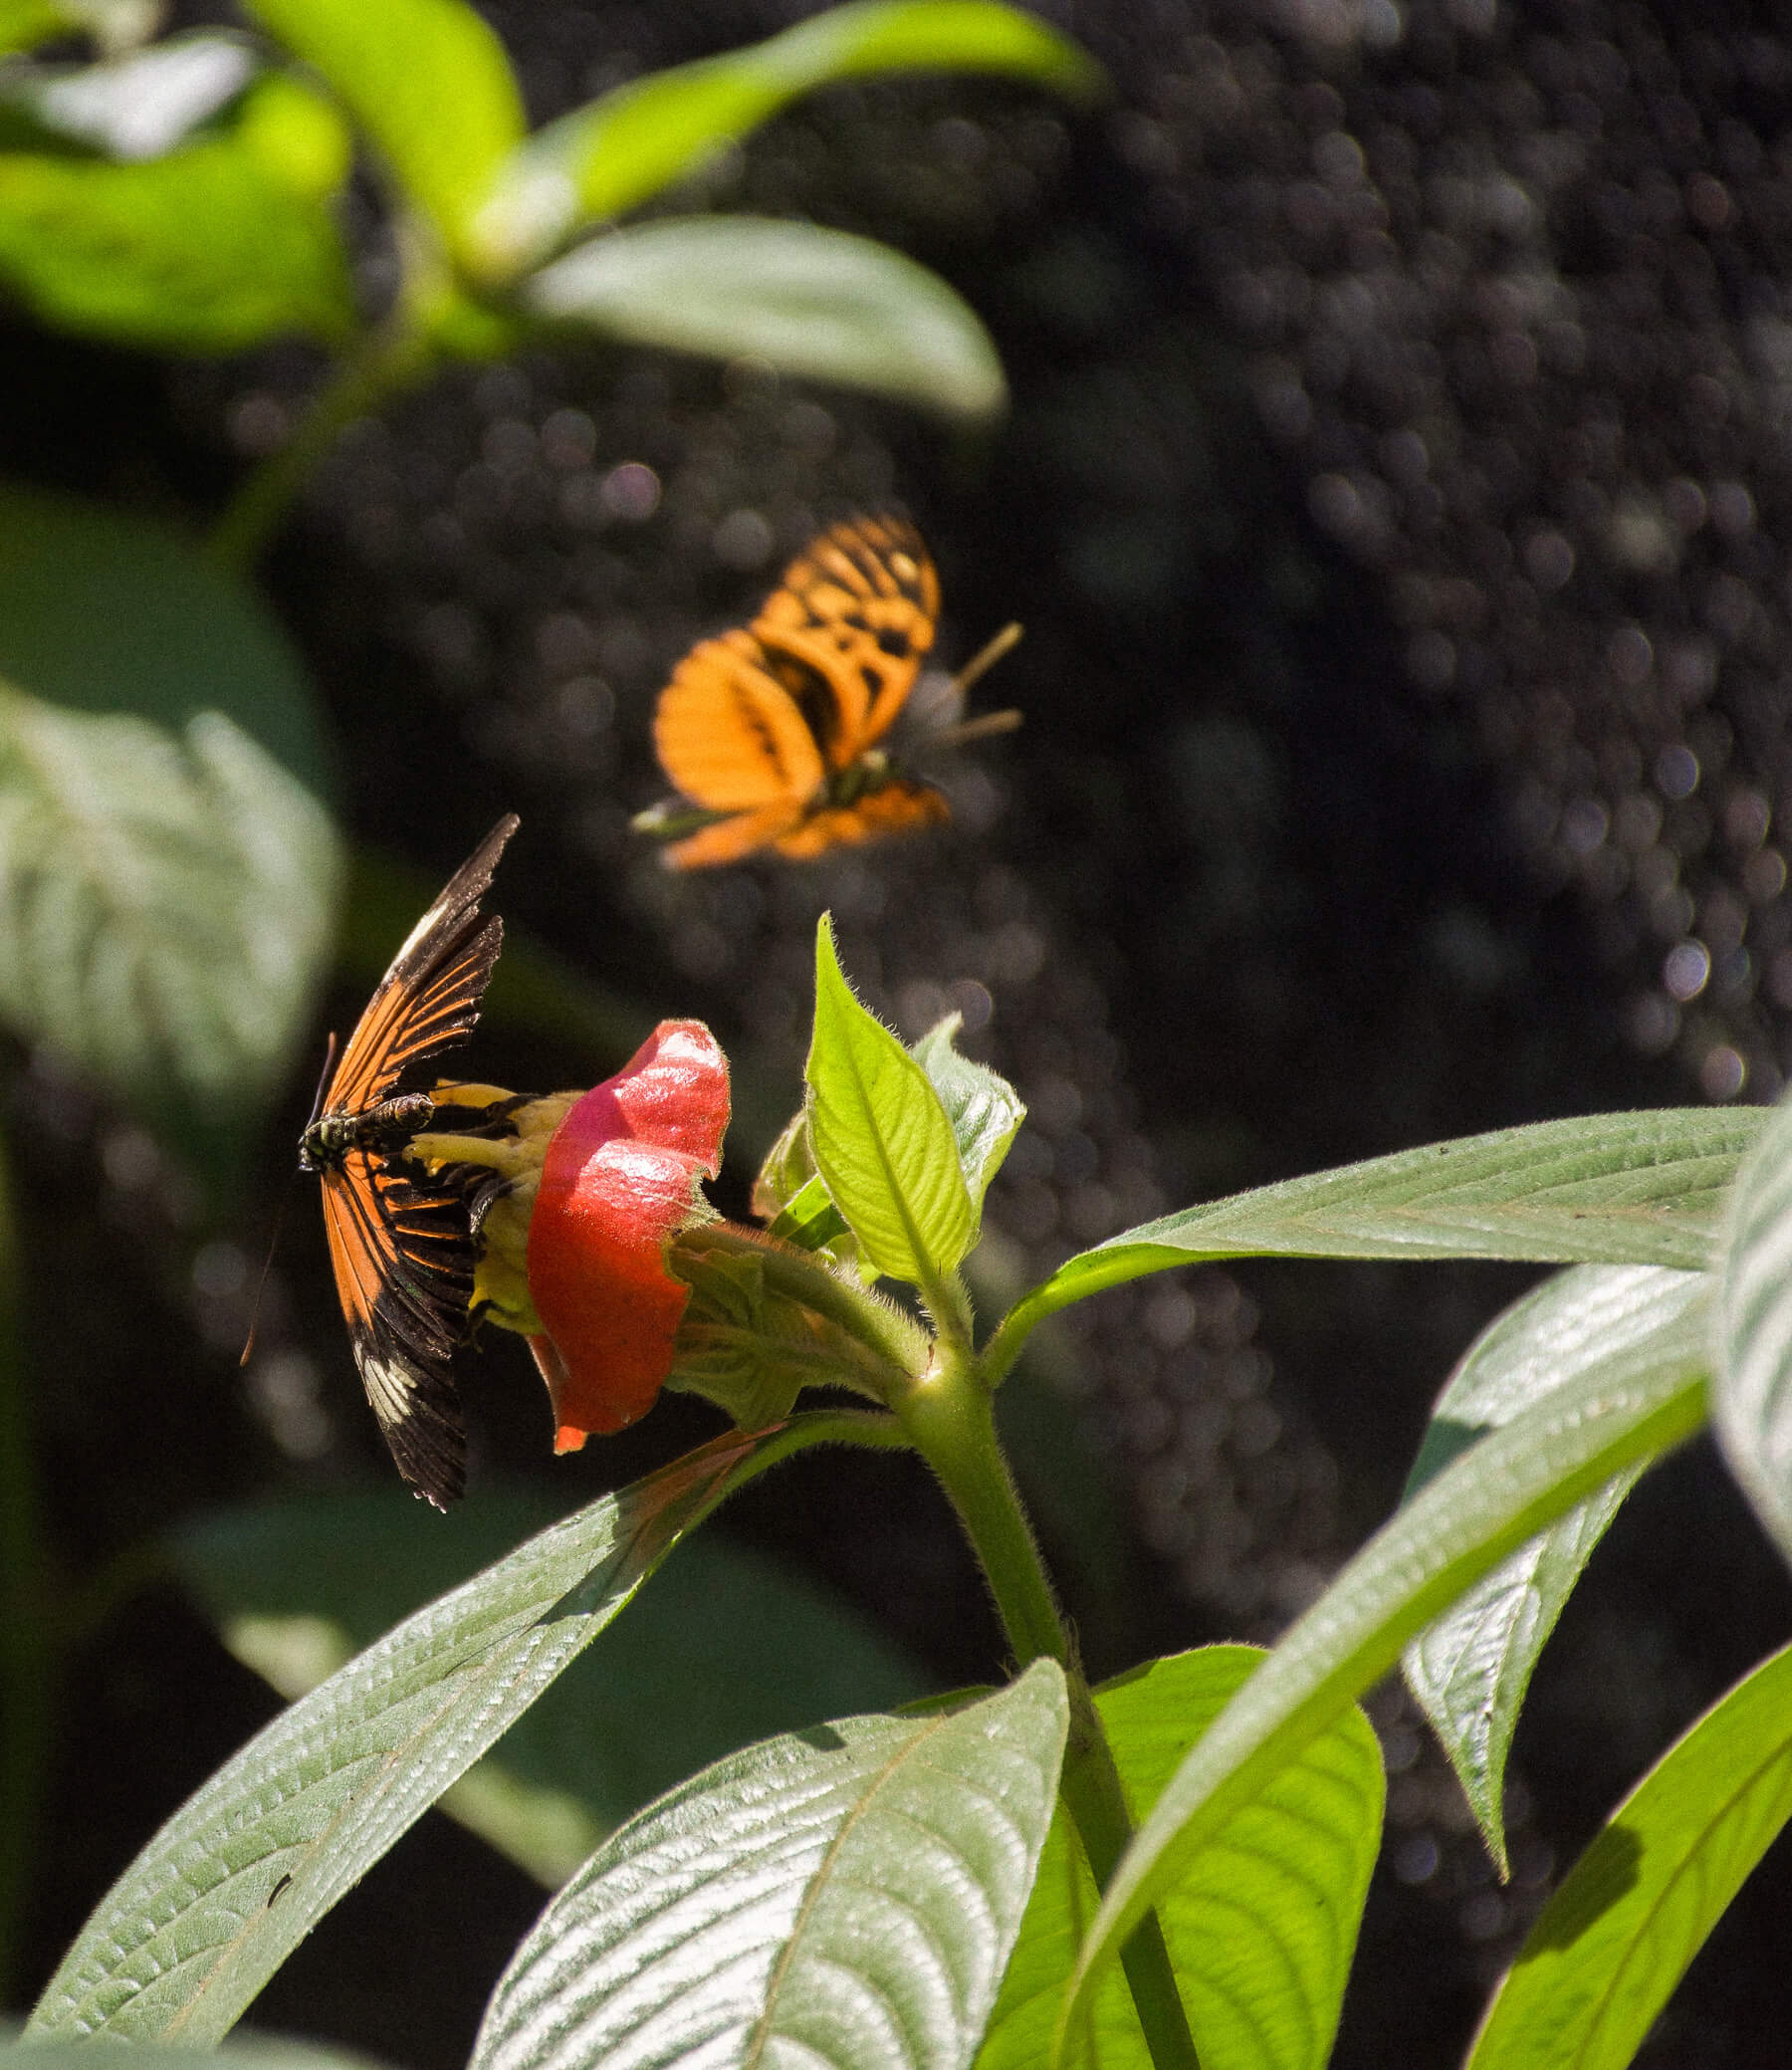 2 Orange butterflies, one on a red flower and one flying behind it